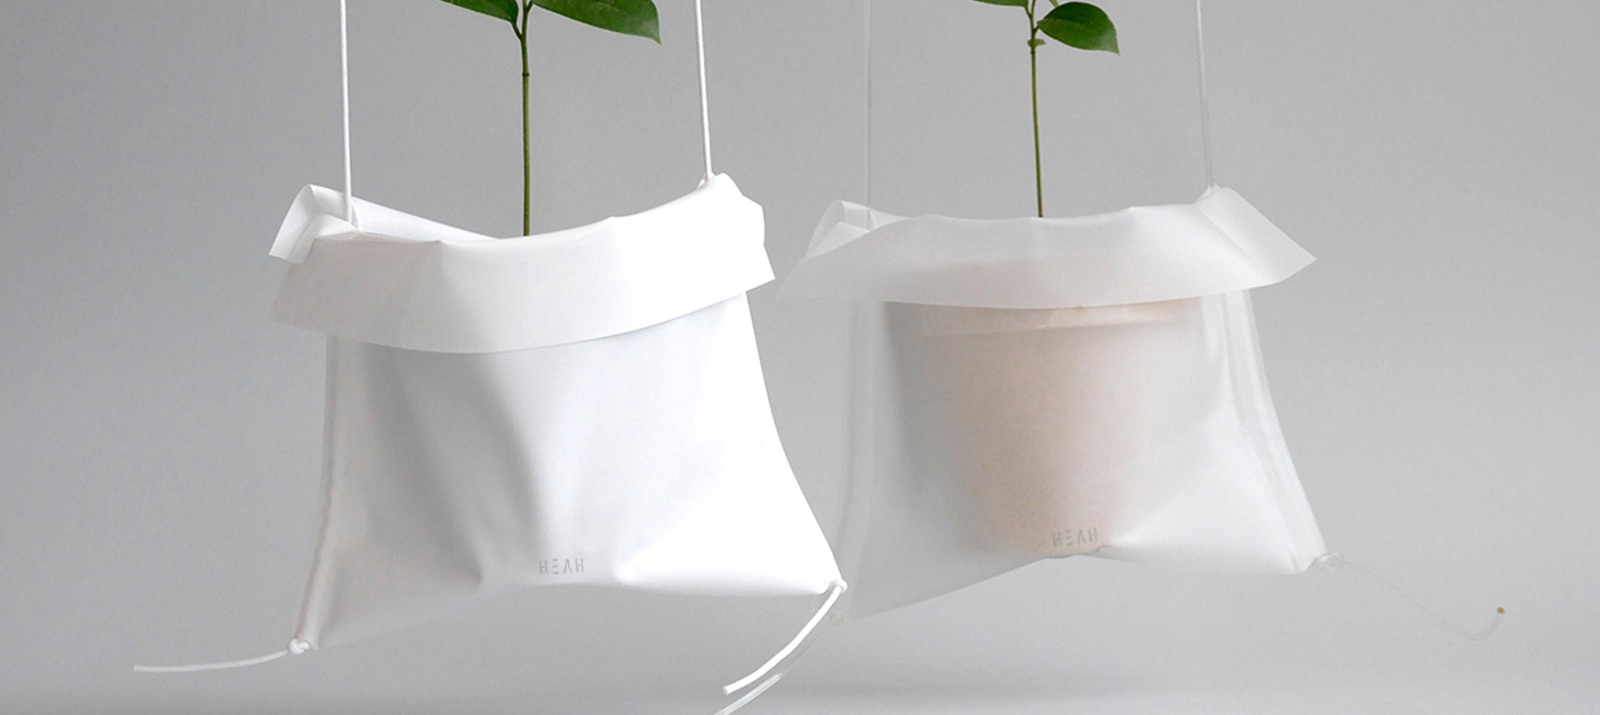 HEAN Pot Cradle is the best hanging planter for a tiny apartment.